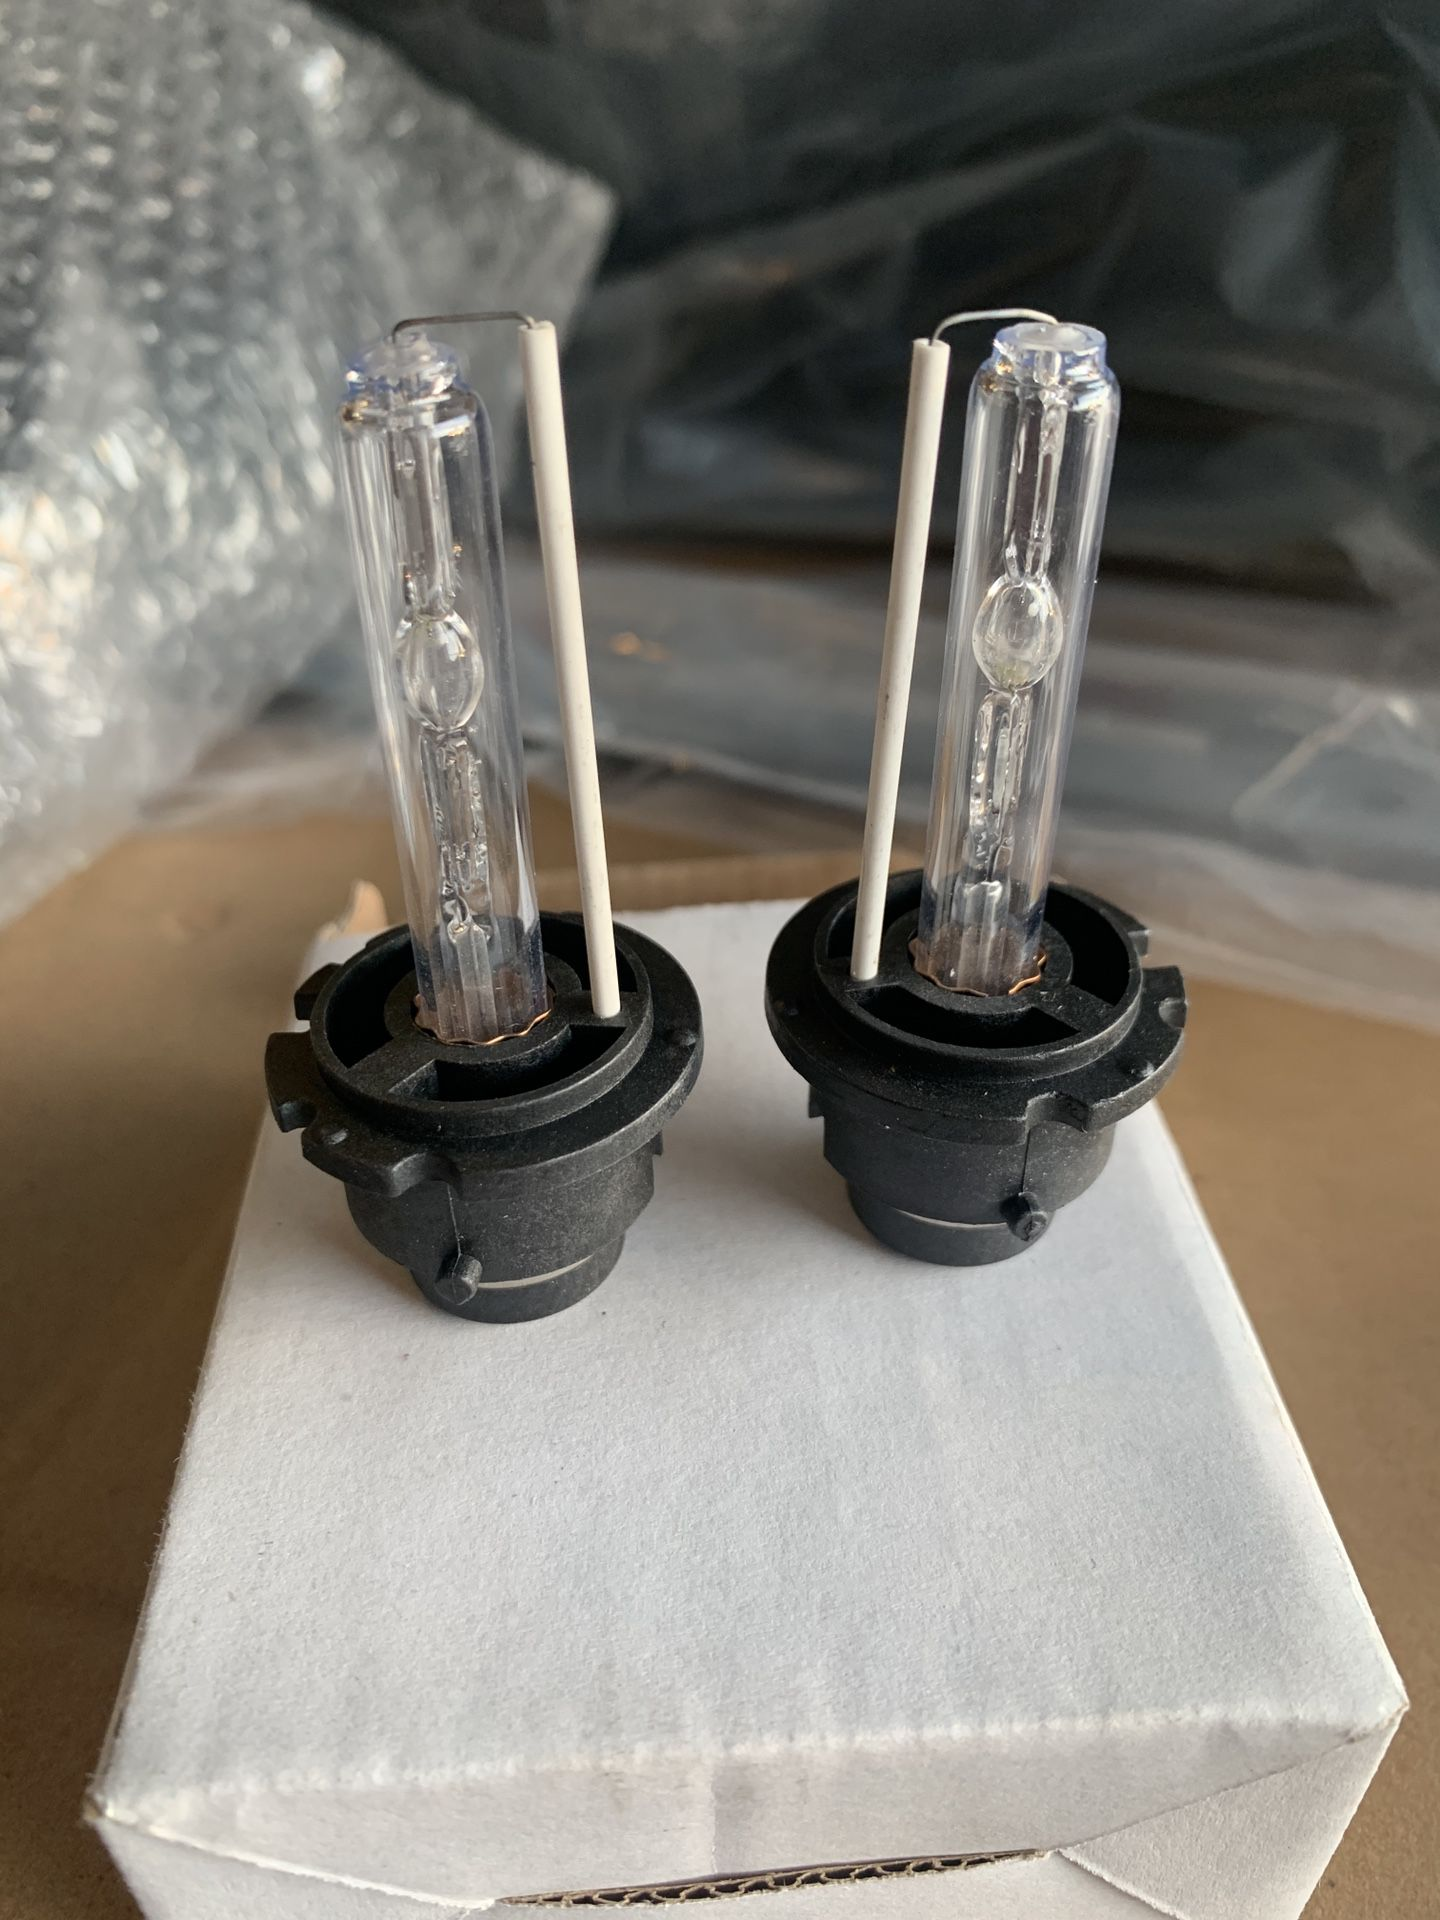 New D2S HID Headlight bulb replacements